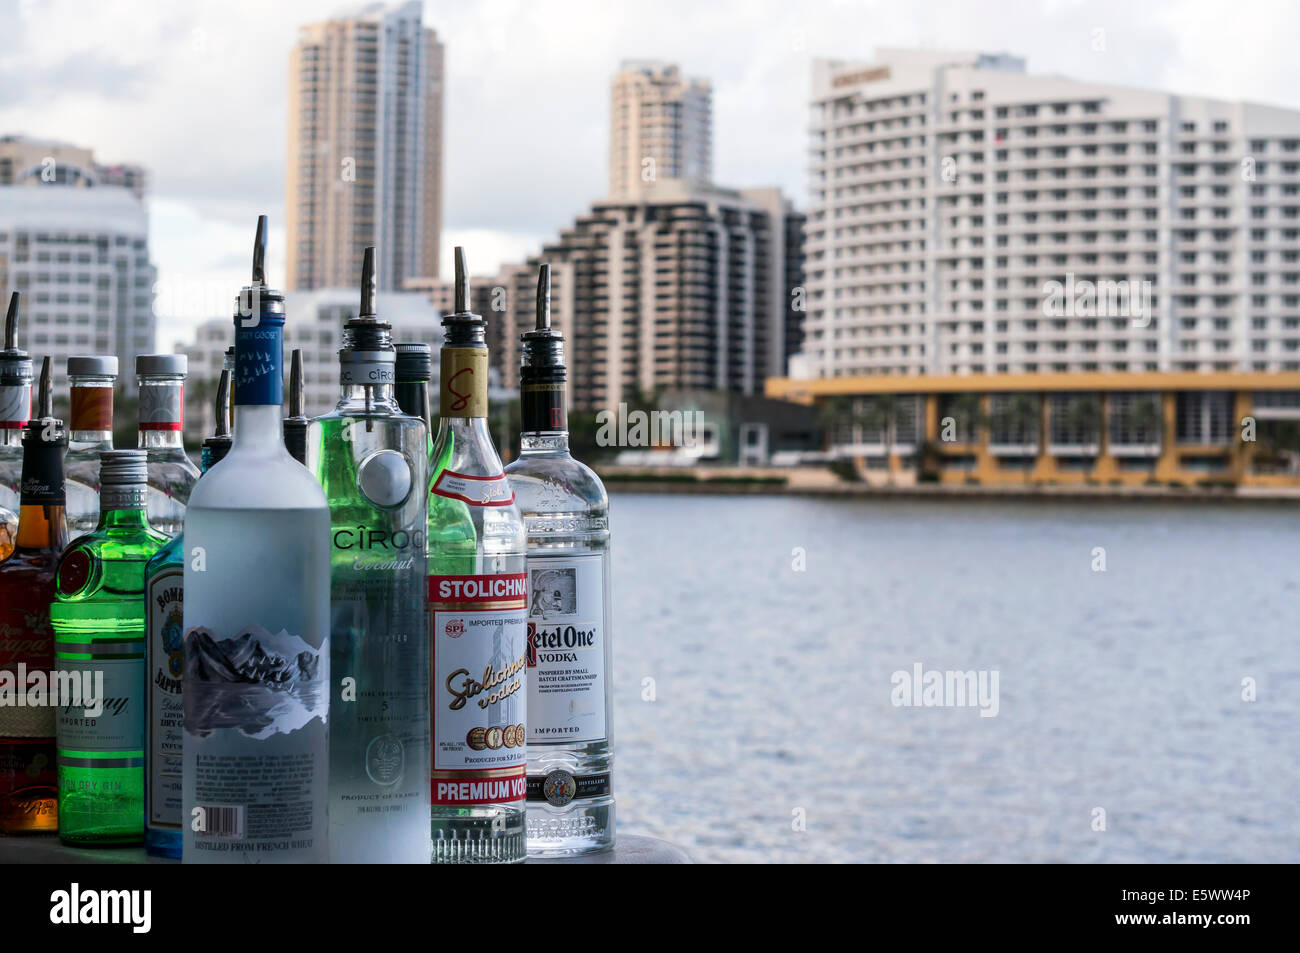 Liquor bottles sit on the patio bar of Crazy About You restaurant on Biscayne Bay in Brickell area of Miami, Florida. Stock Photo